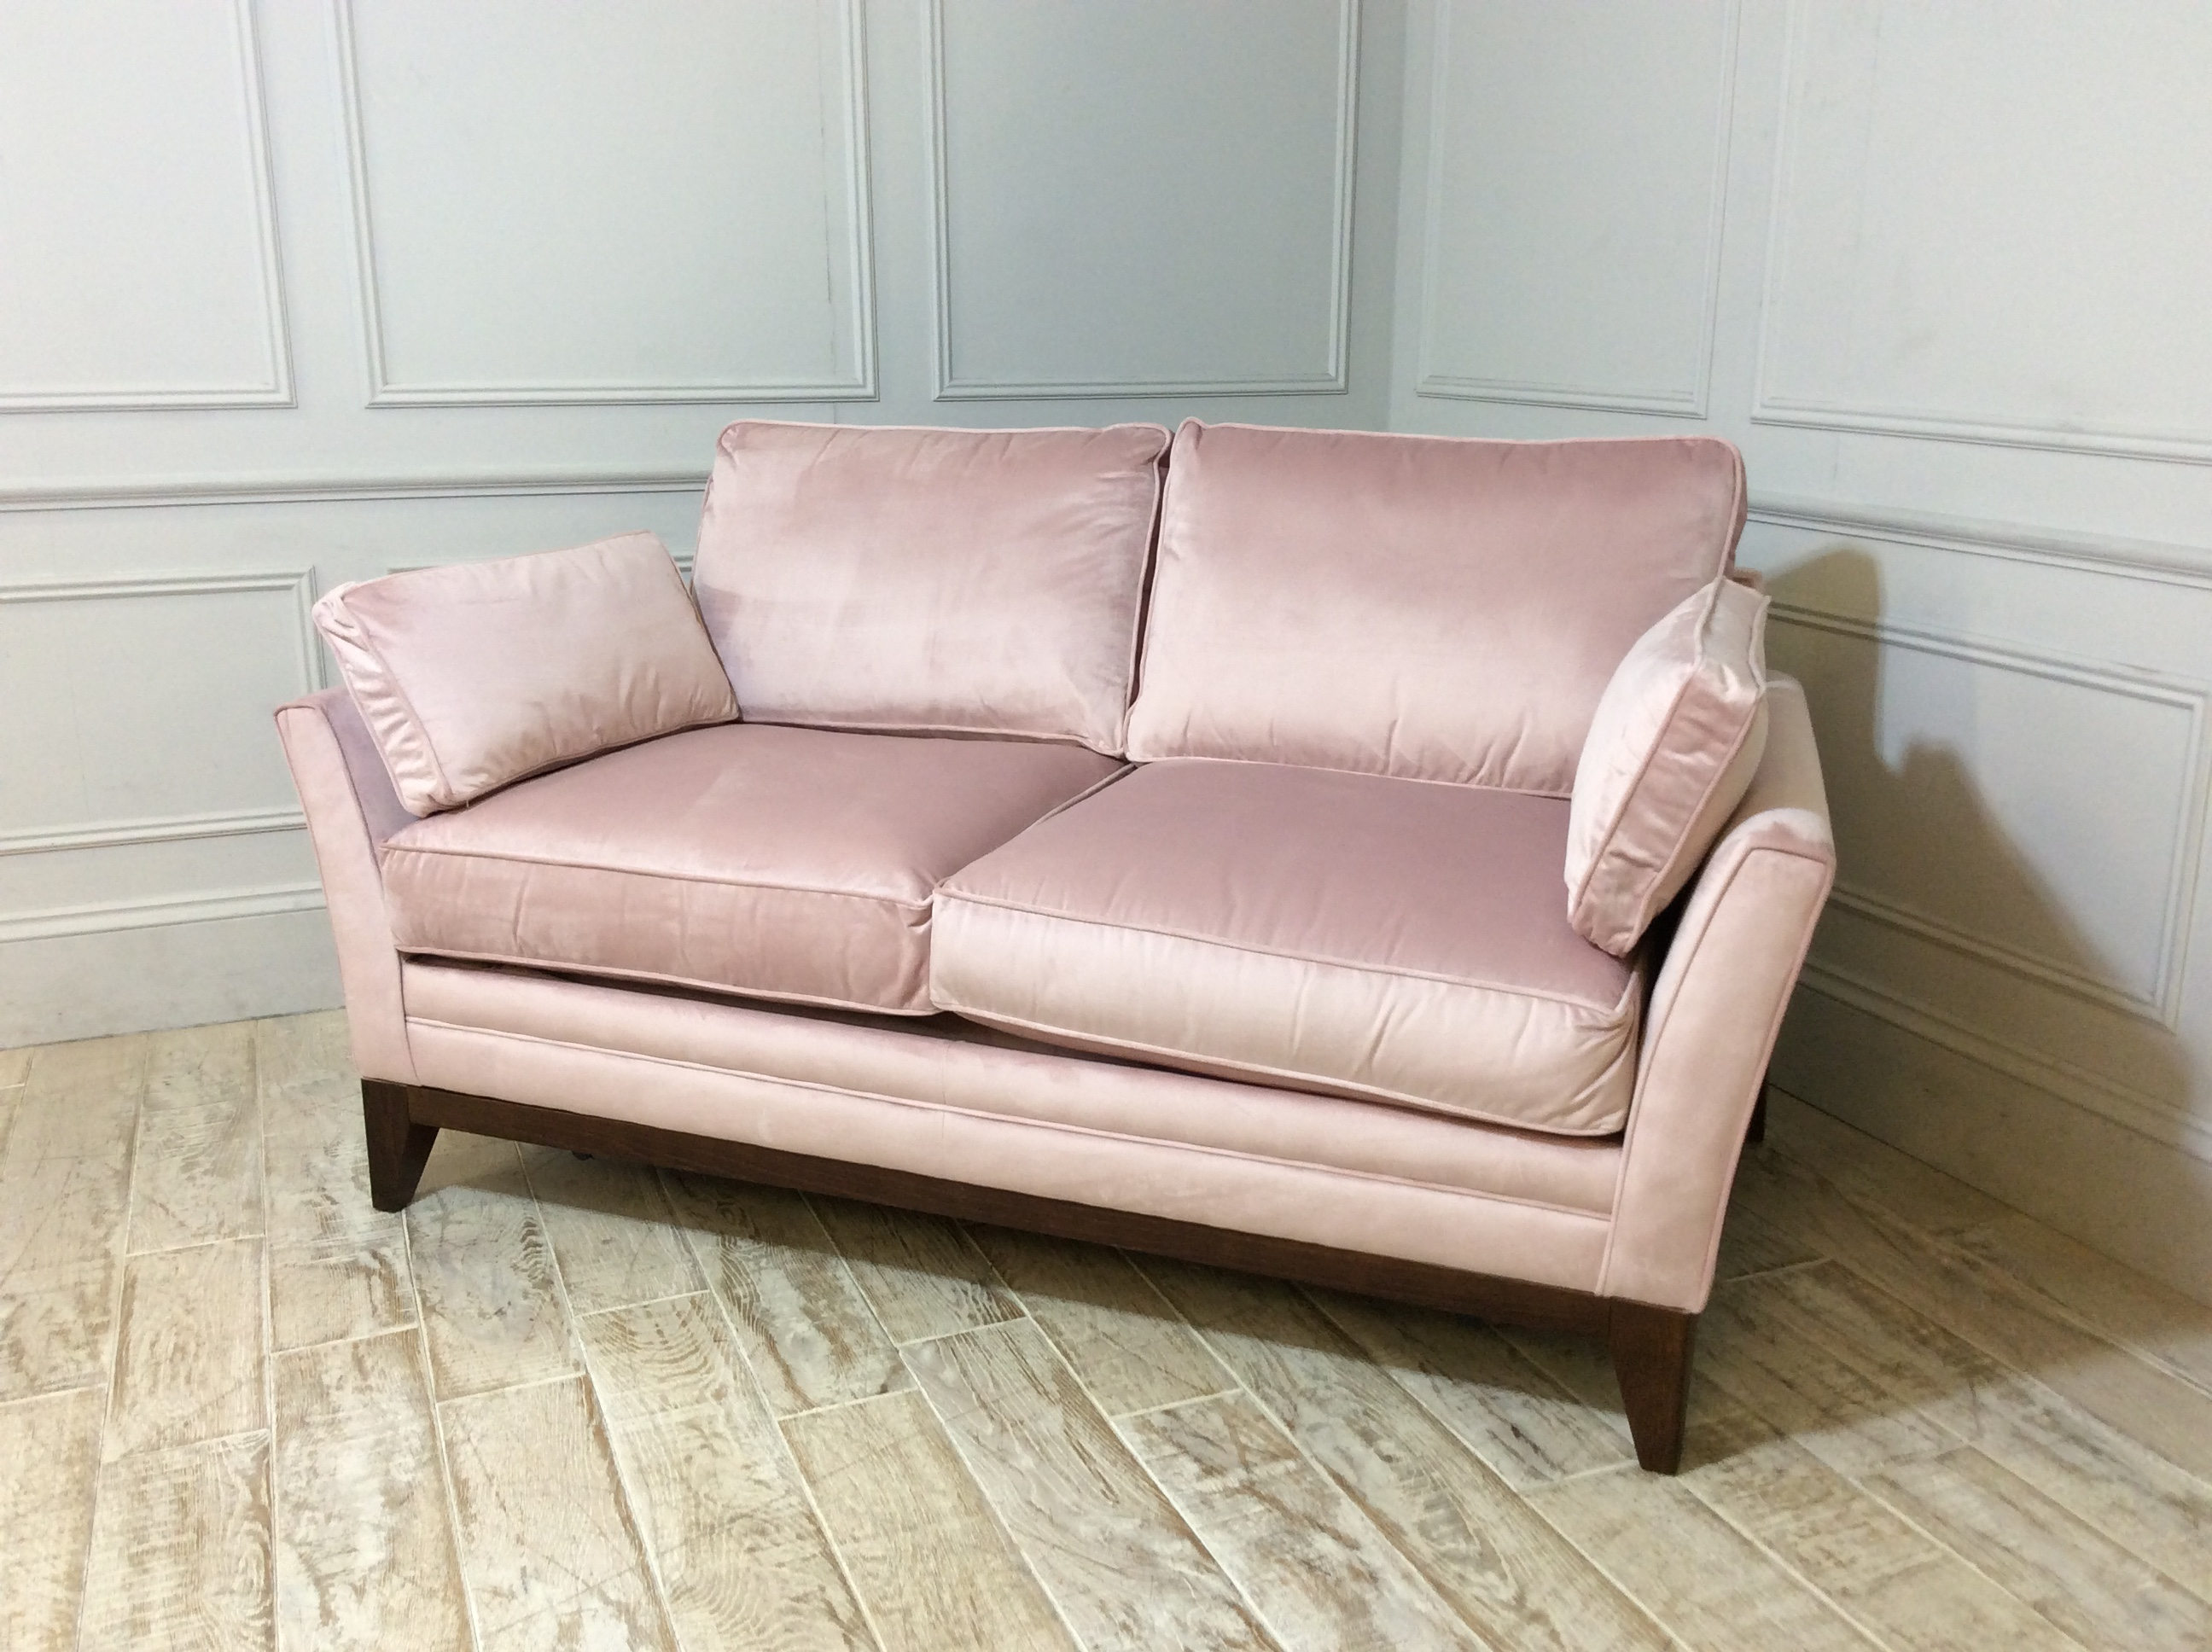 Exmouth 2 Seater Fabric Sofa Bed in Carnation Pink